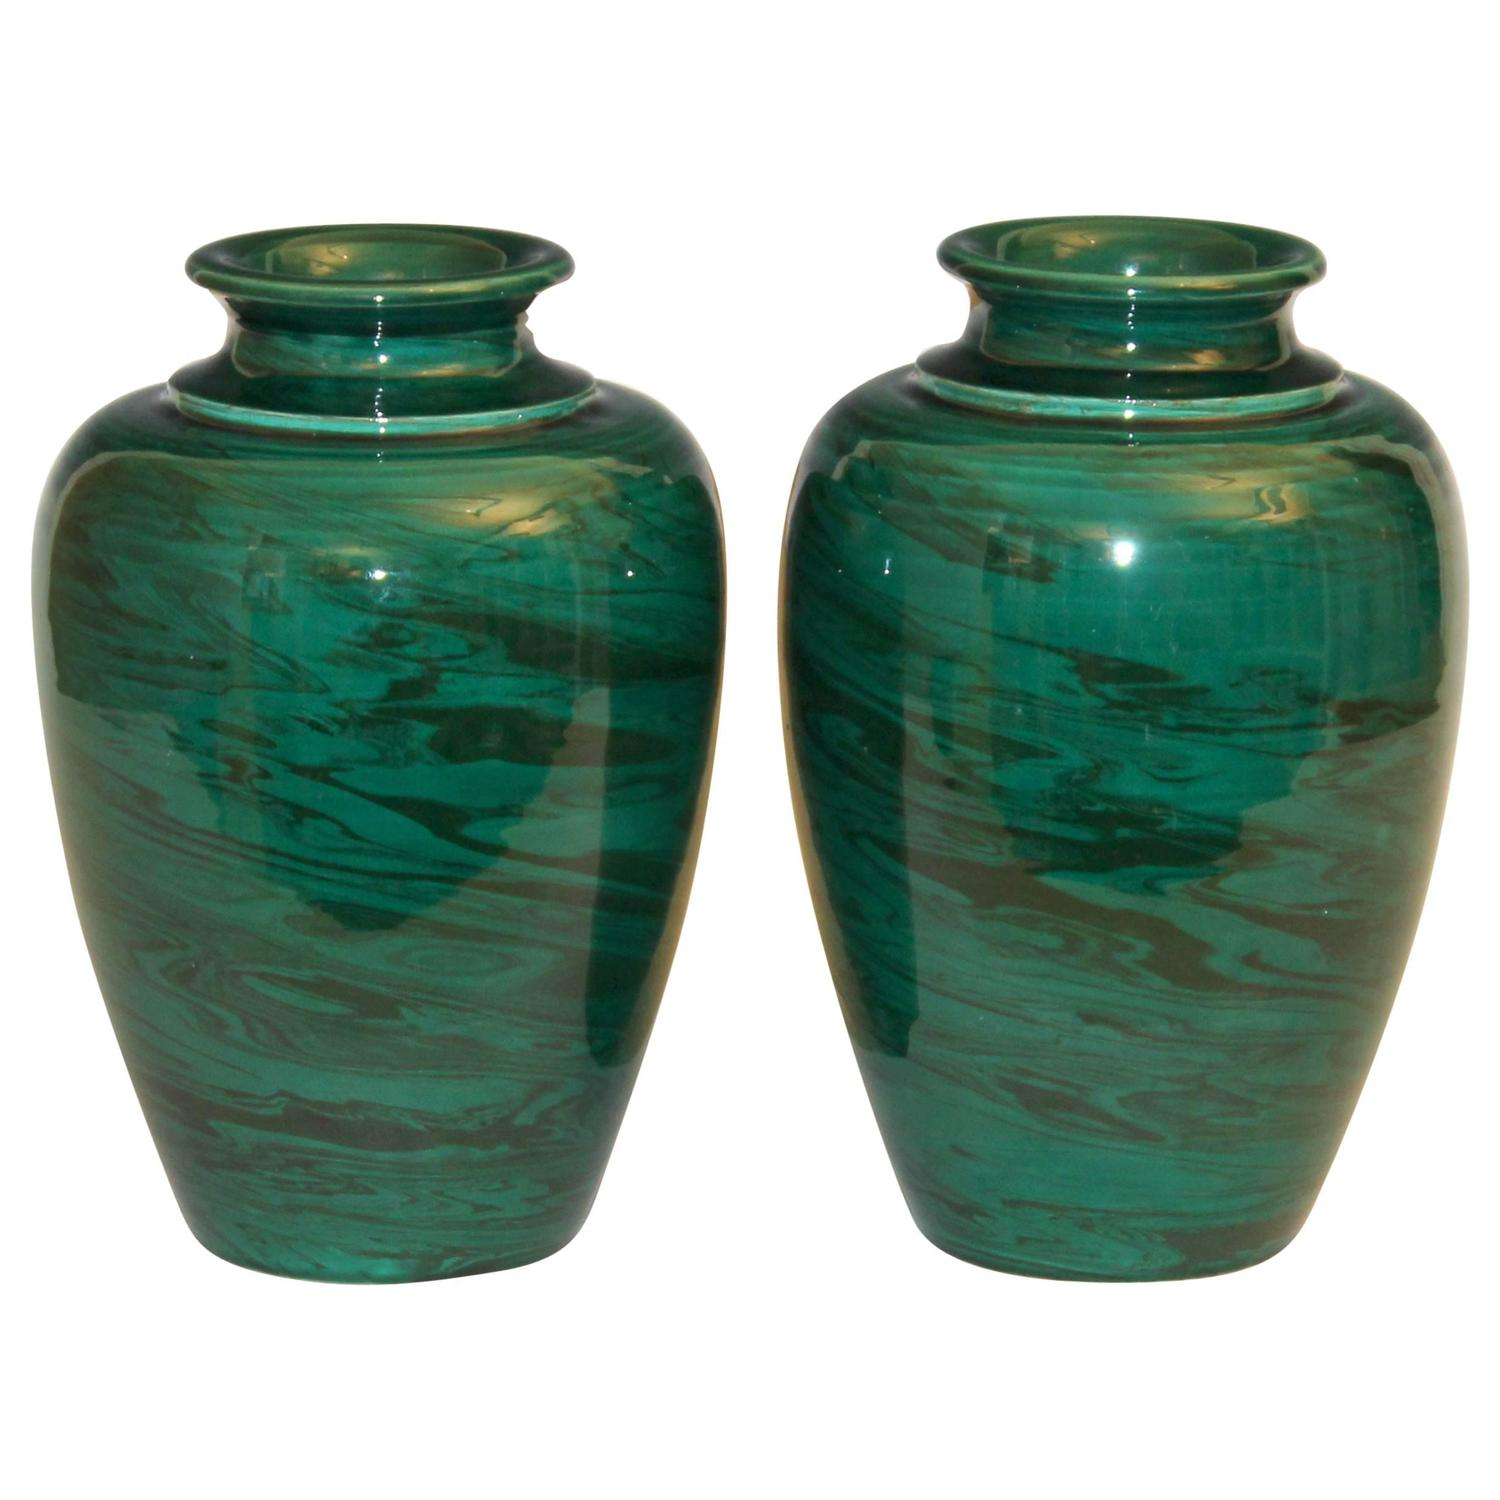 Pair of vintage bitossi green marbled malachite italian pottery pair of vintage bitossi green marbled malachite italian pottery vases at 1stdibs reviewsmspy